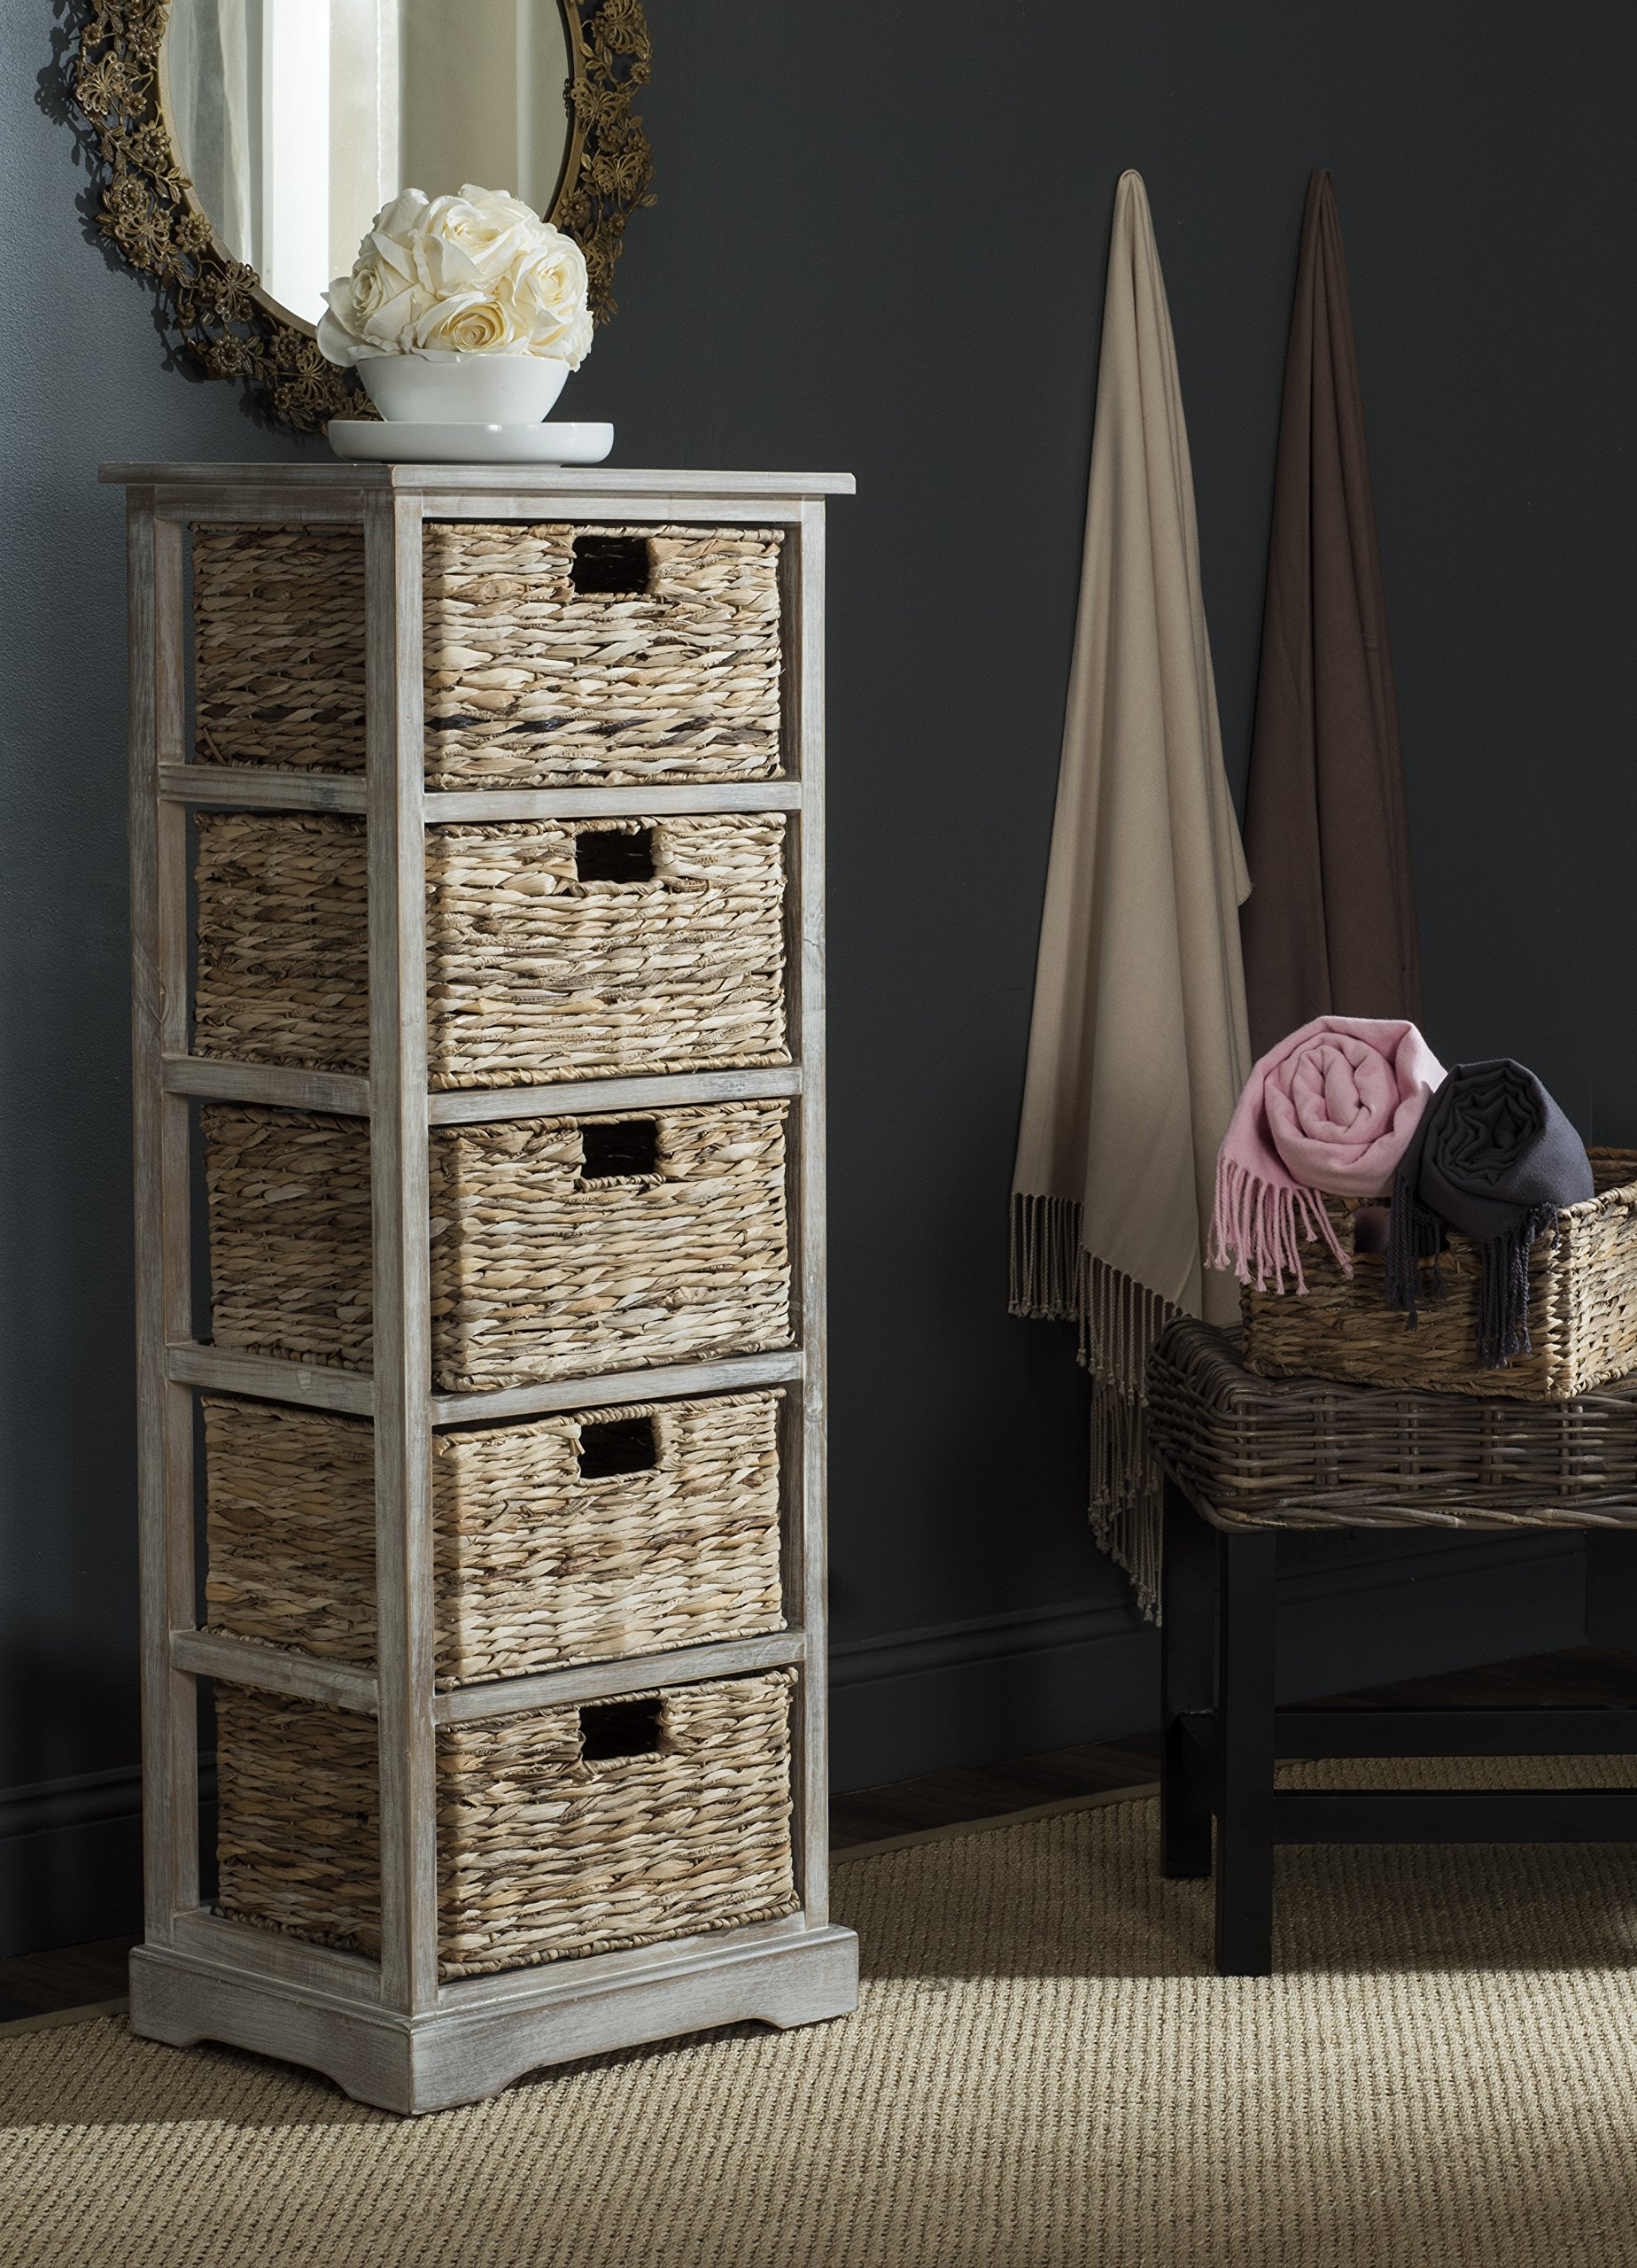 Safavieh American Homes Collection Vedette Vintage White 5 Wicker Basket Storage Tower by Safavieh